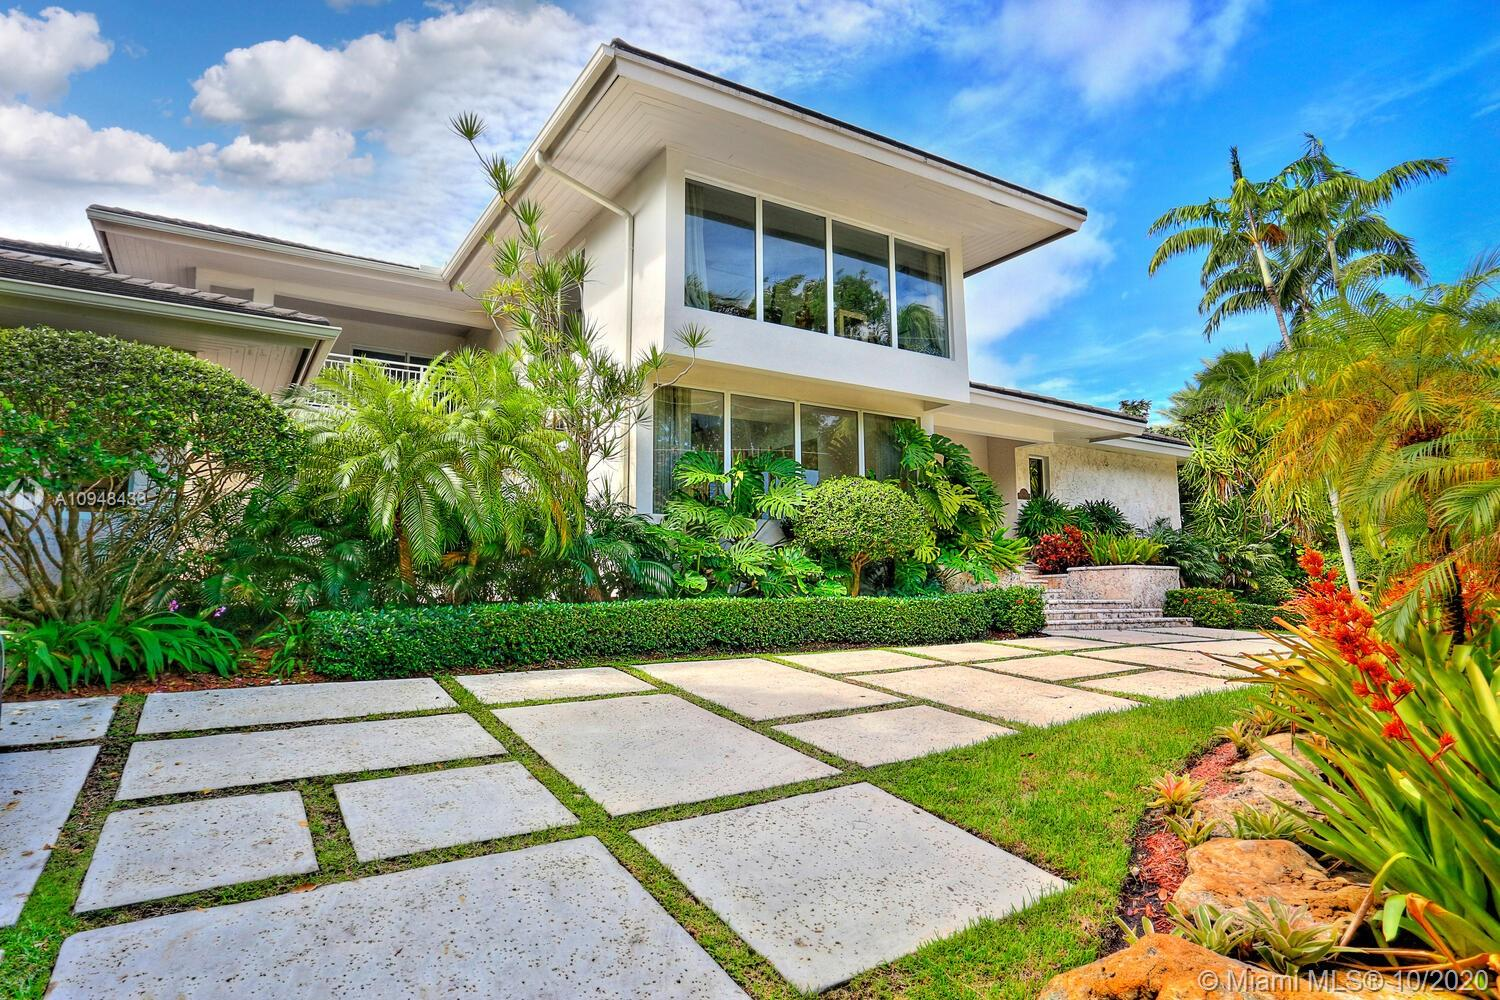 "Stunning waterfront home with a modern vibe in the guard-gated community of Sunrise Harbour.  Spectacular, light-filled open living spaces w/high ceilings, floating staircase and walls of glass overlooking the water & lush tropical gardens. Designer kitchen features lacquered cabinetry, island & top-of-the-line appliances + sunlit, glass enclosed breakfast room. Luxurious master suite opens to wrap-around balcony & features spa-like bath w/soaking tub & frameless glass rain-shower. Ideal layout includes formal living & dining + family room, sitting/reading area & 2nd level office. The home is elevated & offers expansive ""basement"" w/potential as gym, game room or storage. Resort- style outdoor spaces with a deep covered terrace, built-in grill & canal front dock with direct ocean access"